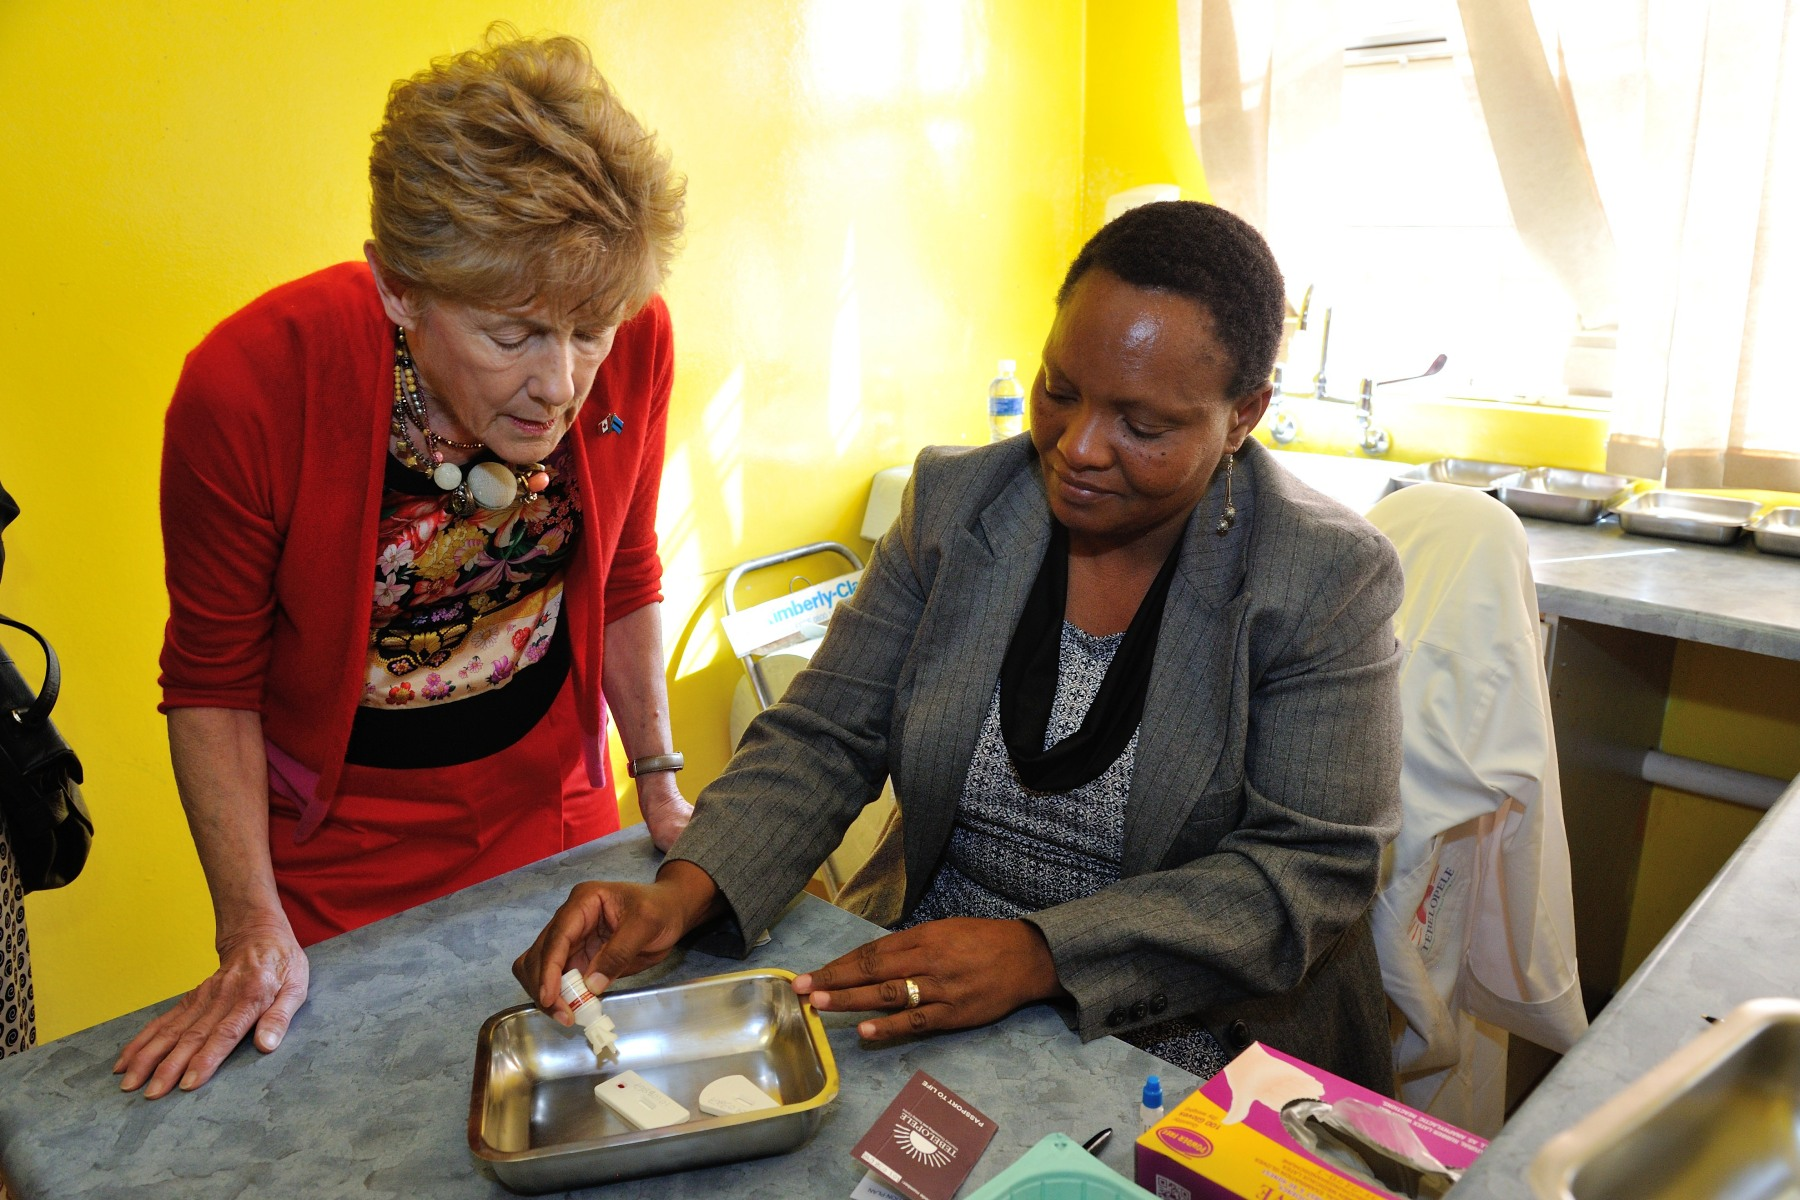 Afterwards, Her Excellency Sharon Johnston visited Tebelopele, a local HIV testing and counselling clinic that administers rapid testing to over 2 000 patients on a monthly basis.